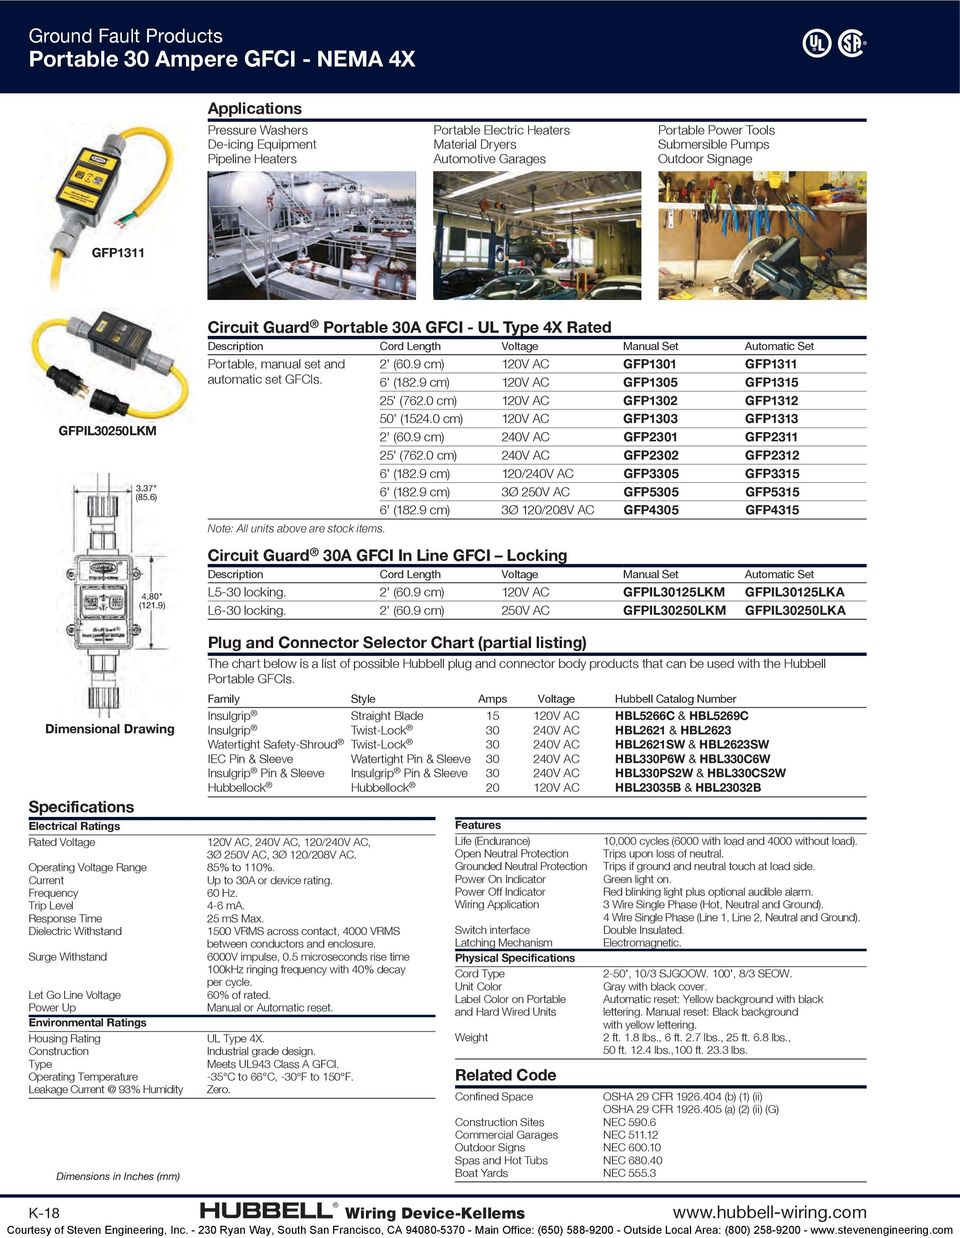 Ground Fault Products Pdf 4 Wire 250v Schematic Diagram 9 Circuit Guard Portable 30a Gfci Ul Type 4x Rated Cord Length Voltage Manual